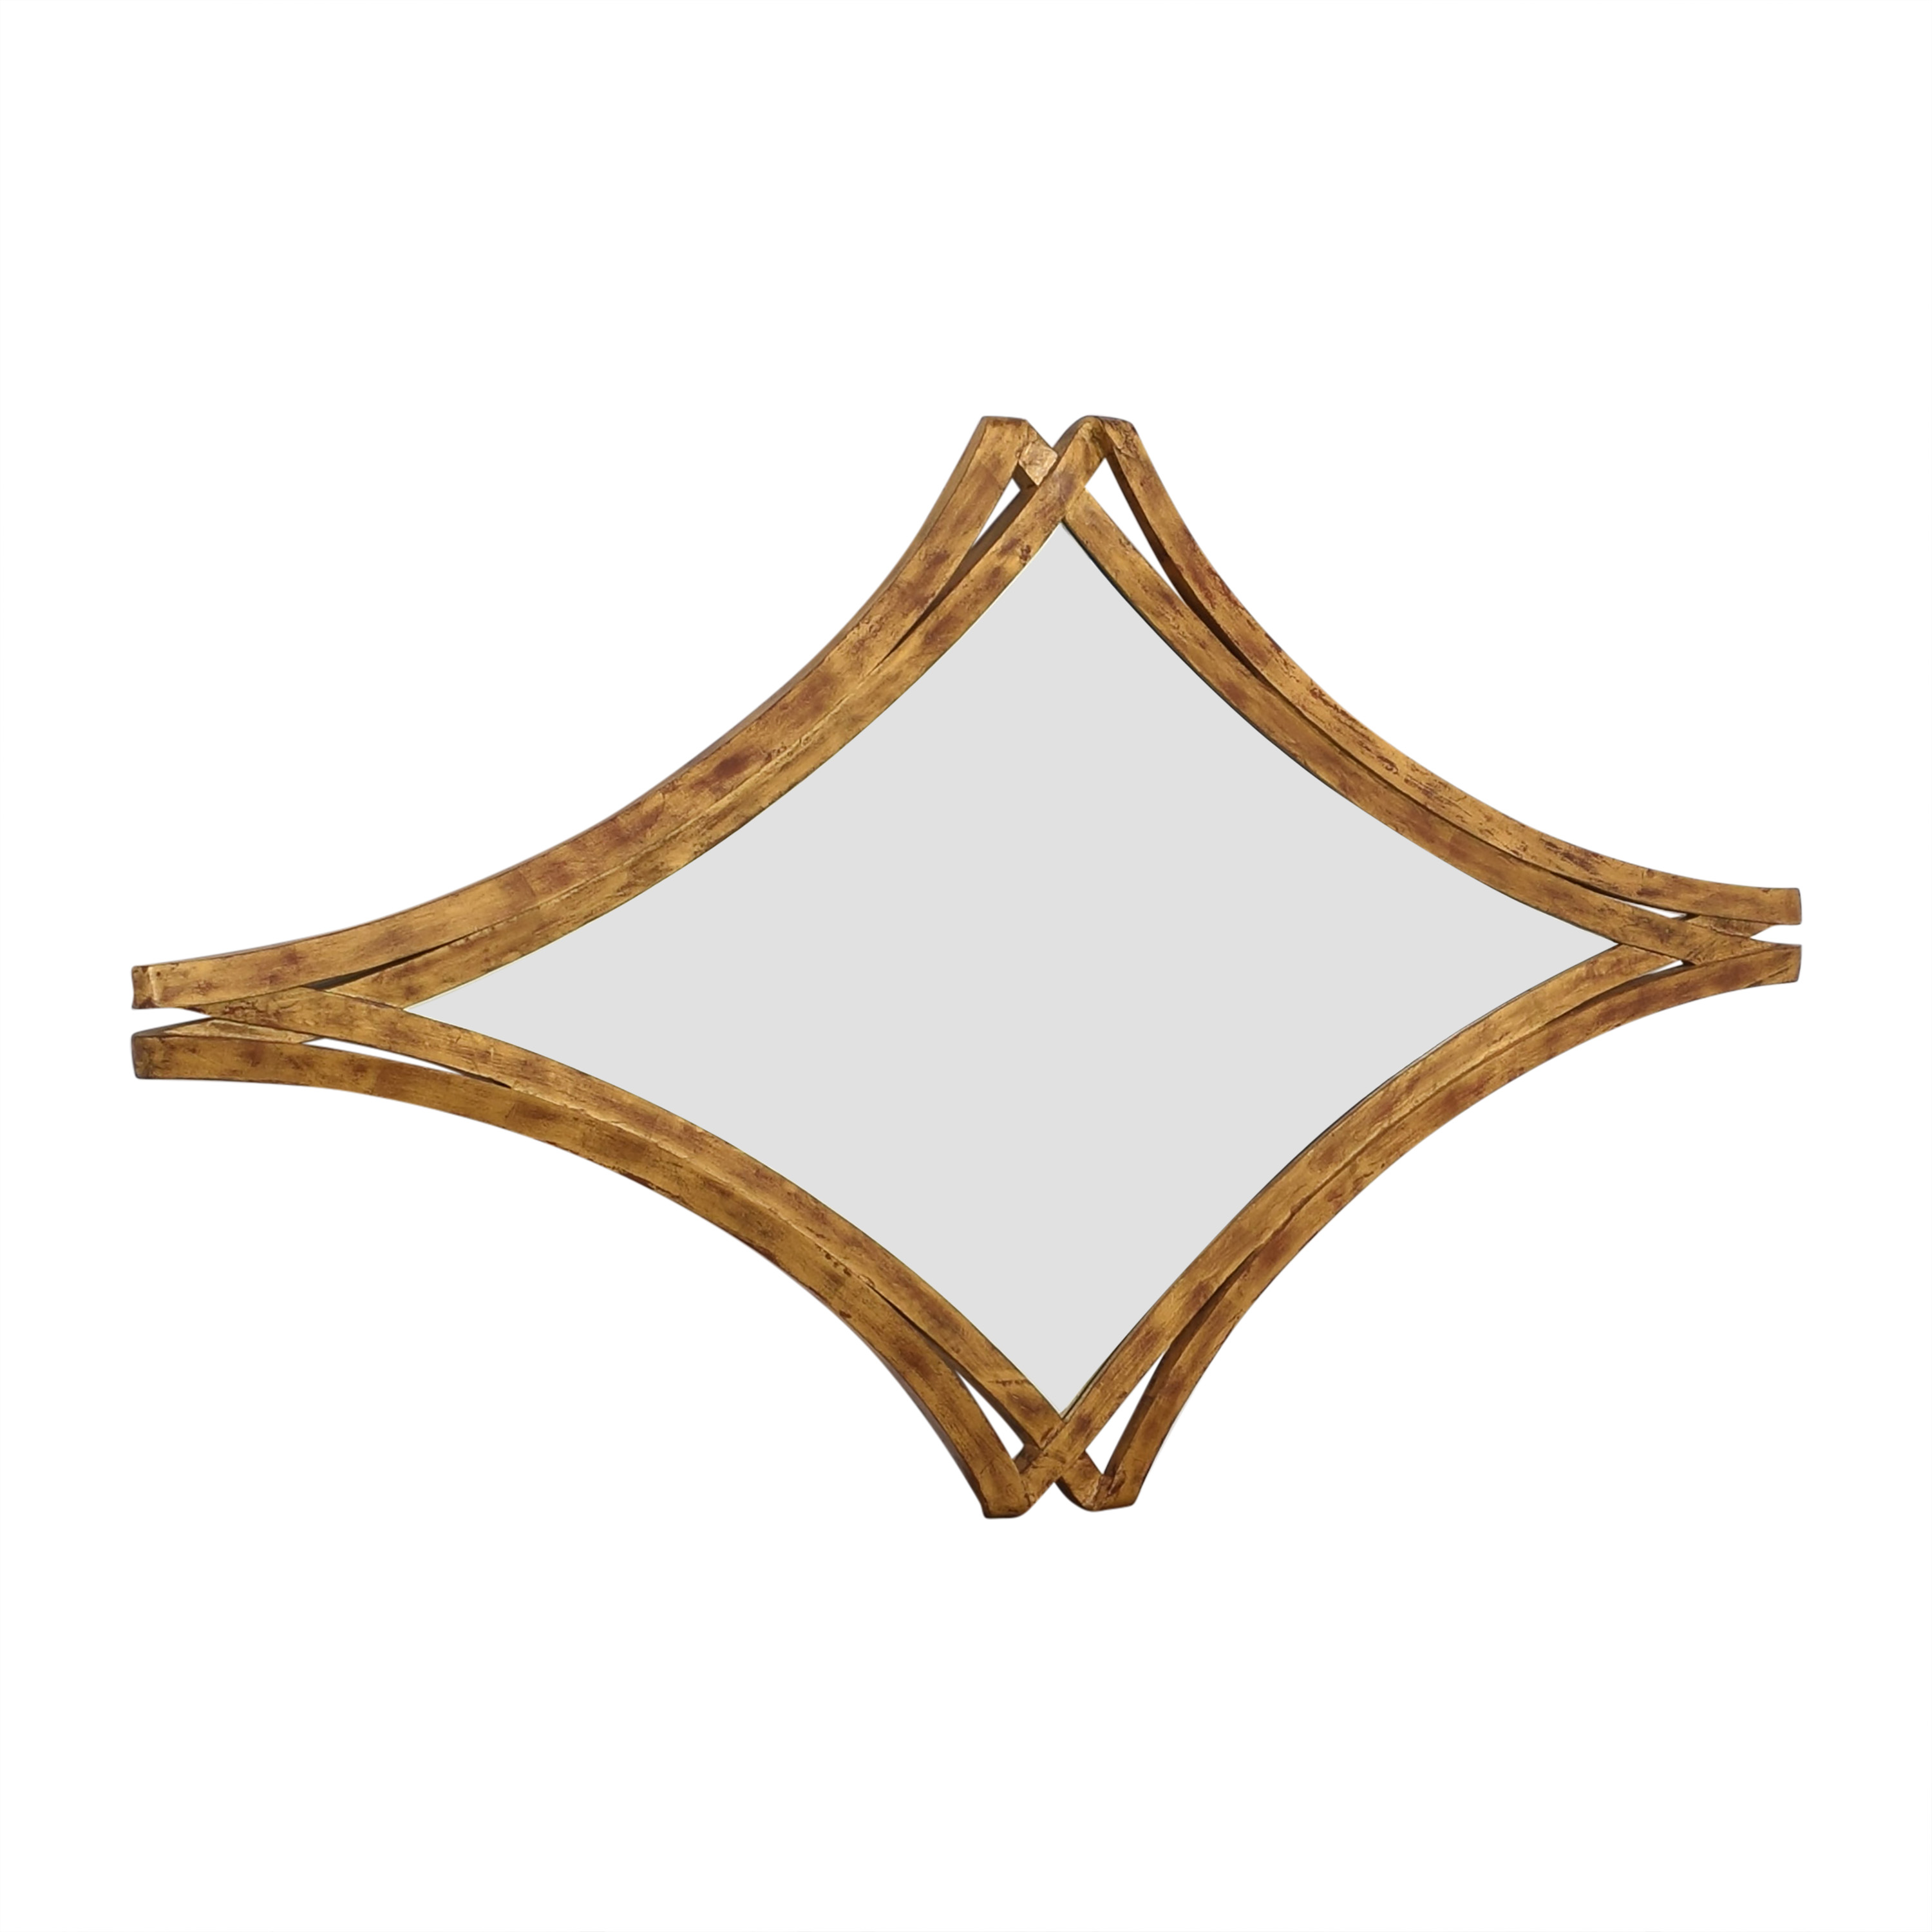 buy Christopher Guy Gold Gilded Wall Mirror Christopher Guy Decor